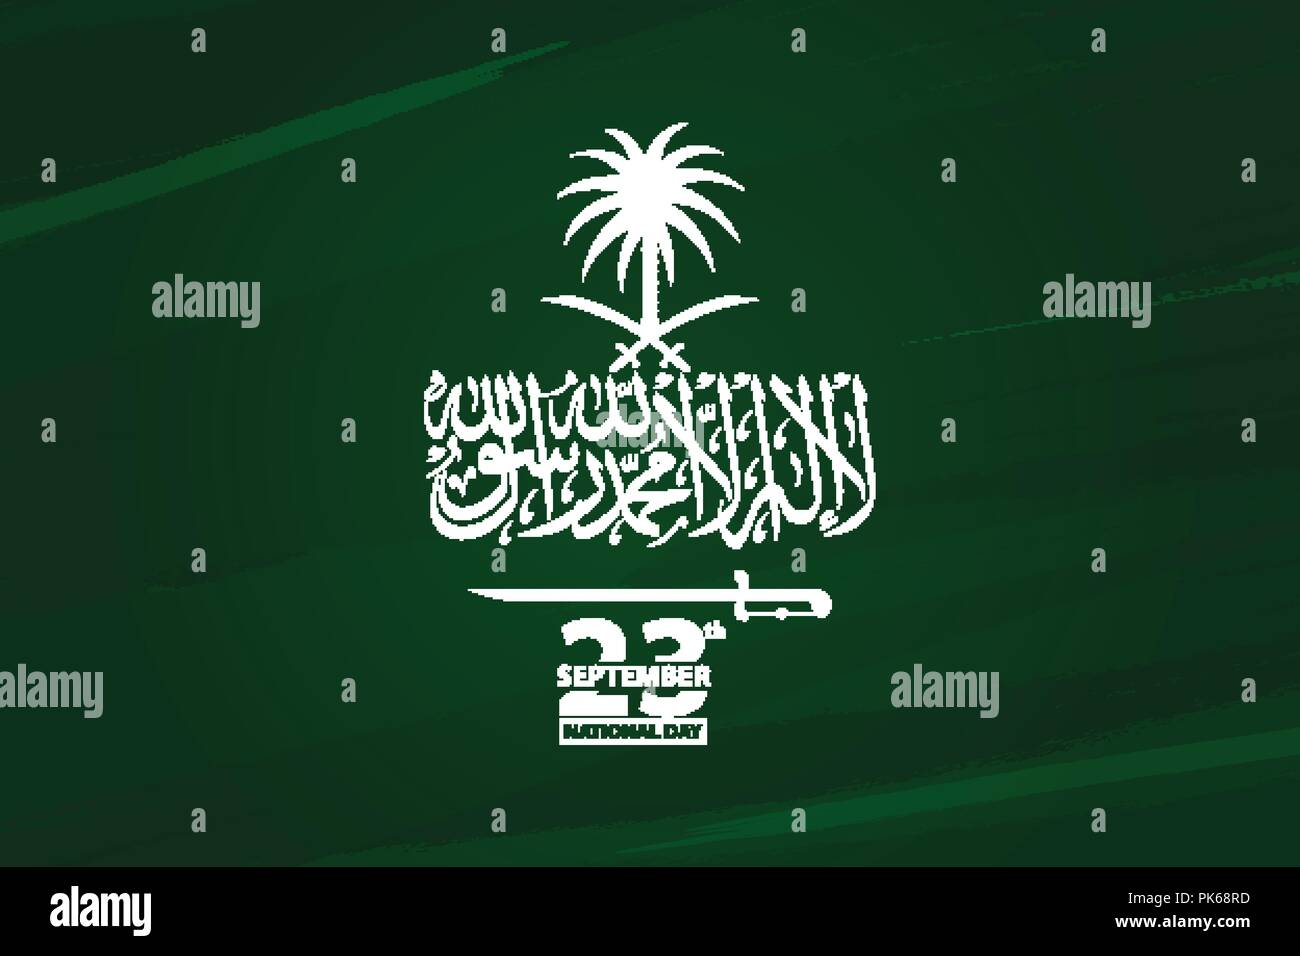 Happy Independence Day Saudi Arabia 23 September Vector Background - Stock Vector